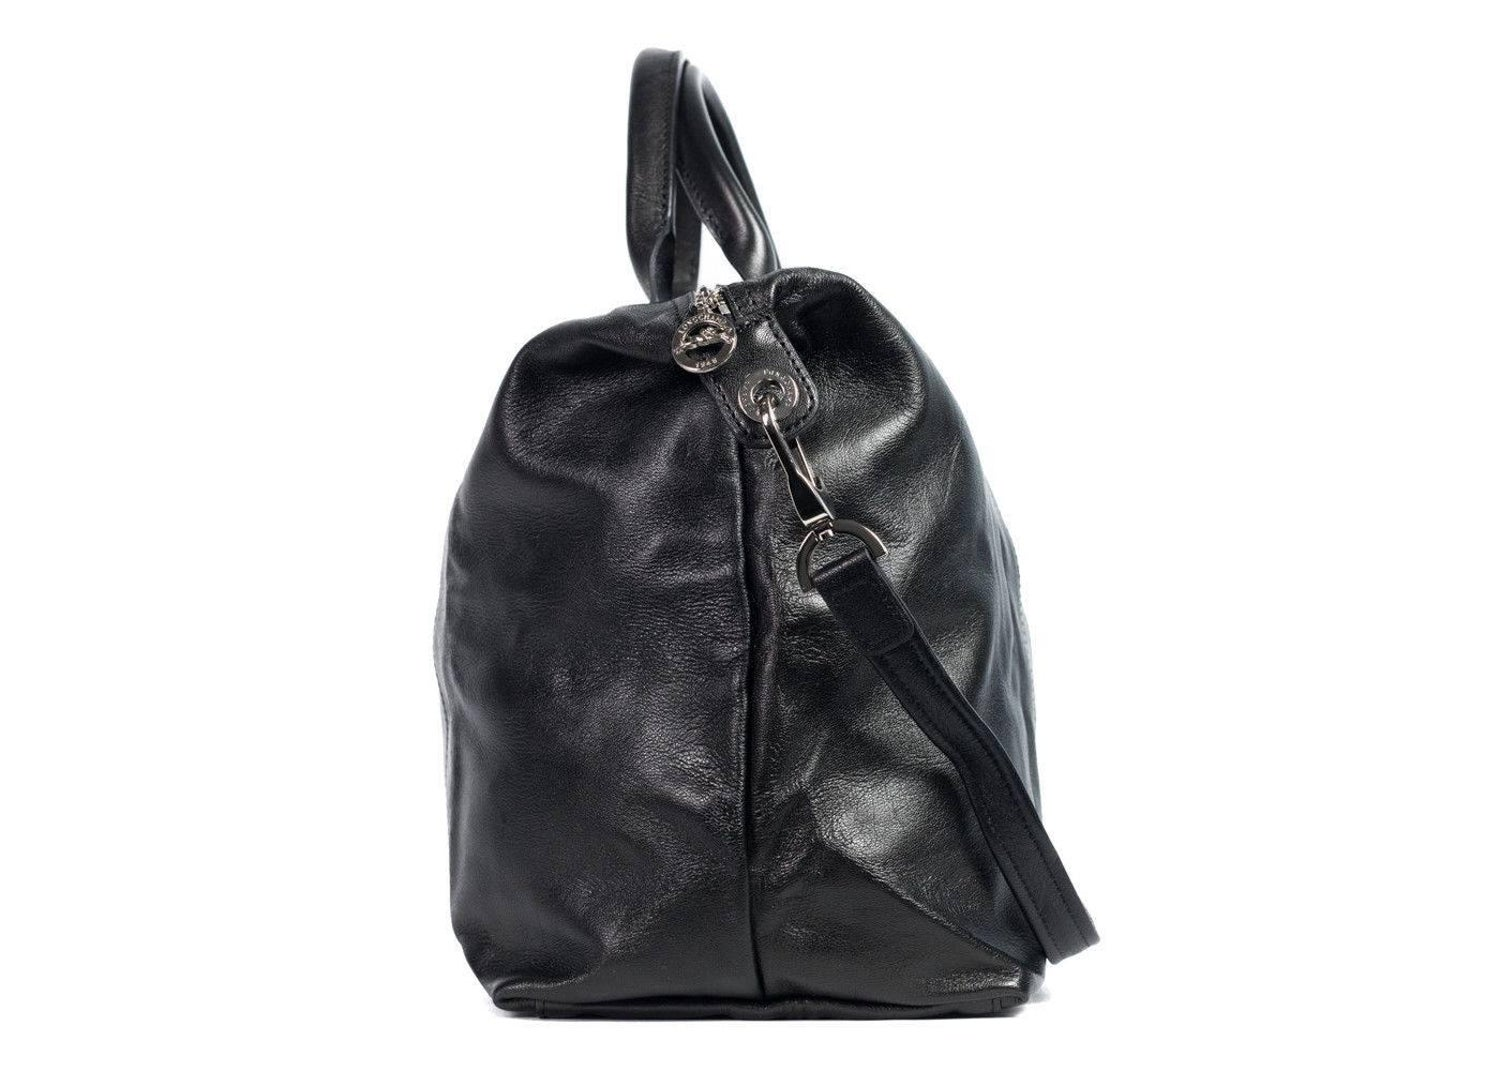 40744c87d595 Longchamp Black Leather Le Pliage Cuir Large Top Handle Bag For Sale at  1stdibs